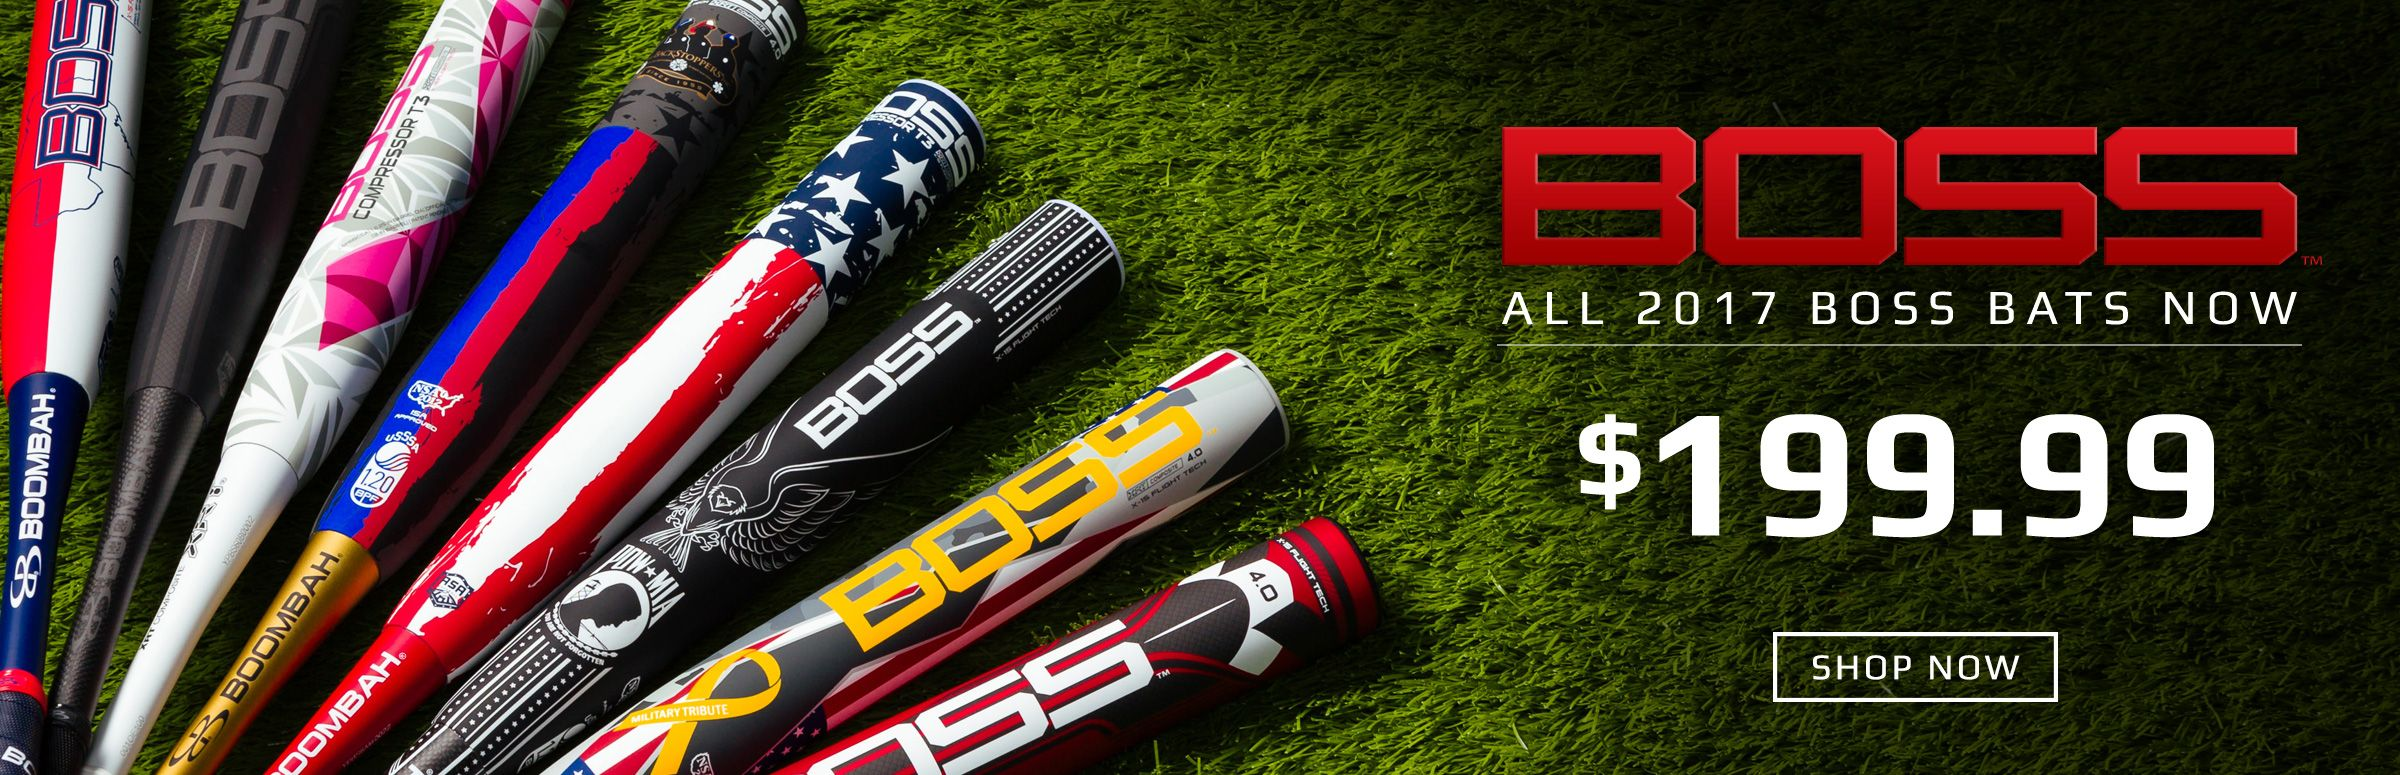 Boombah Boss Reduced Price